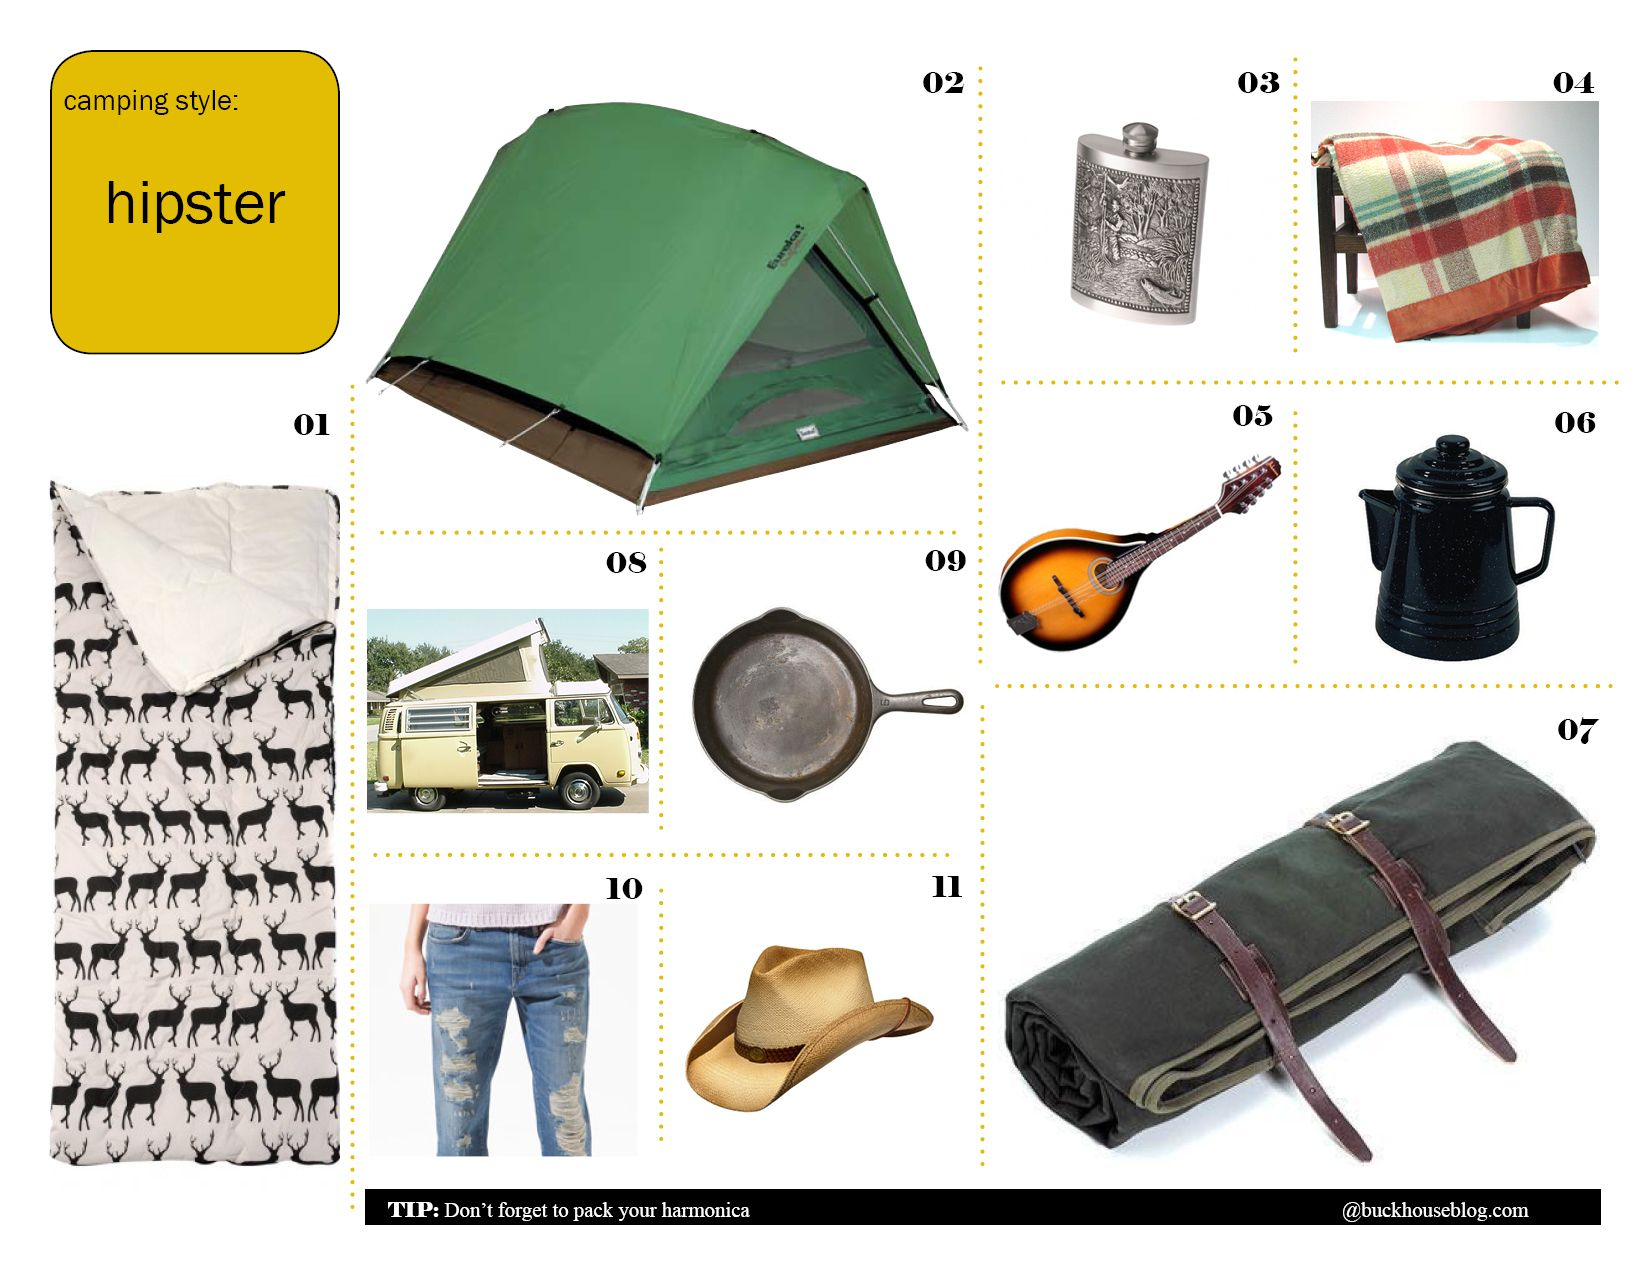 hipster storytelling summit pinterest camping guide